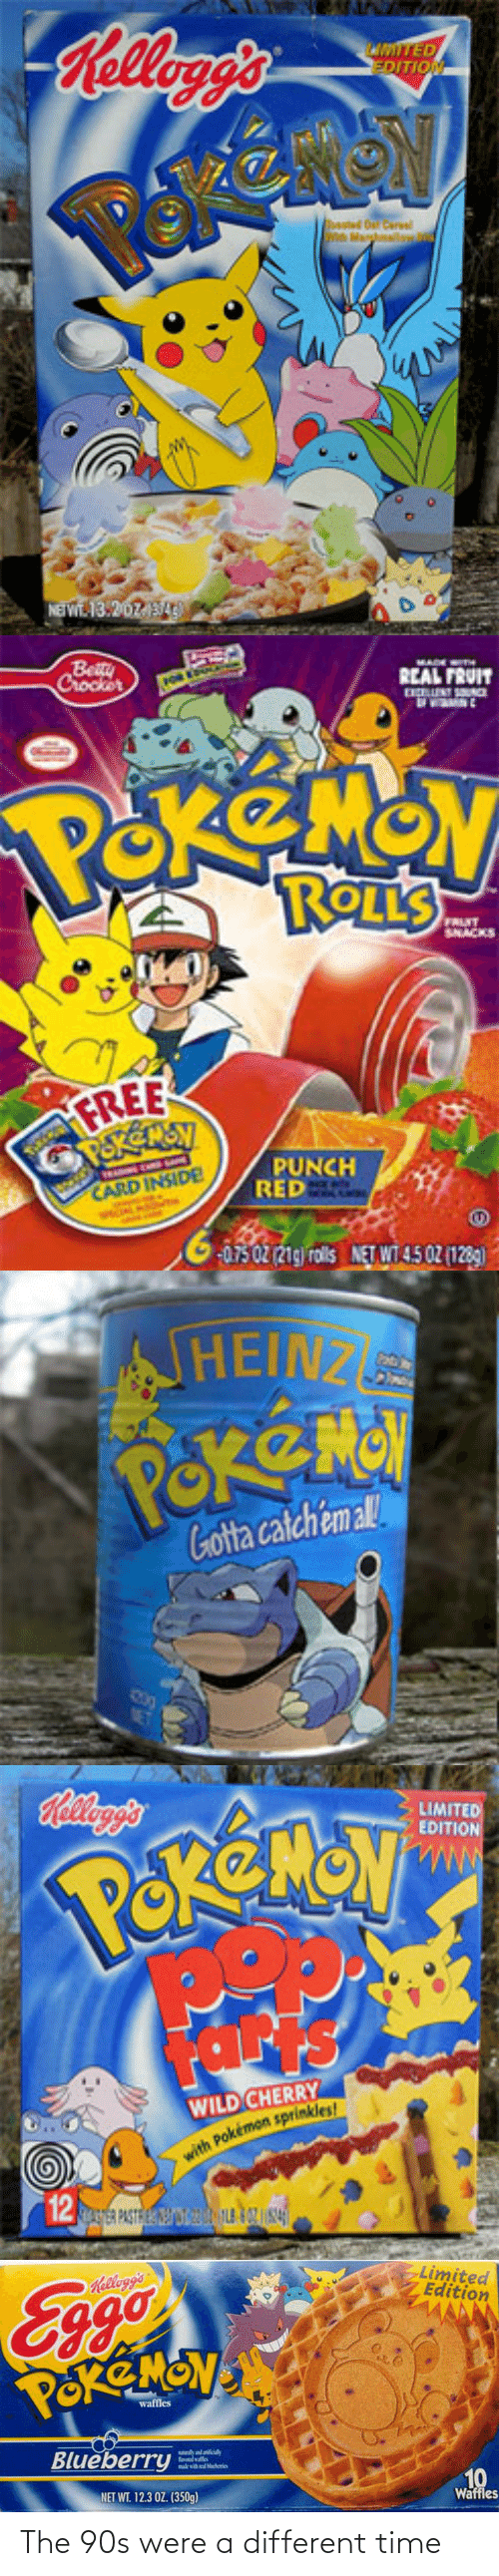 kelloggs: Belogg's  wmTED  DITION  NEIWE 13.202   Beitu  Crocker  REAL FRUIT  POKEMON  FFRUIT  SRACKS  FREE  PUNCH  RED  CARD INSIDE  657302 21g) rolil NET WI 4.5 02 (1289)   HEINZ  HEINZ  Gotta catchém al  ET   Hellag's  LIMITED  EDITION  POREMON  WILD CHERRY  with Pokémon spriinkles  12   Limited  Edition  Eggo  POREMONS  Kellogg's  waffles  Blueberry  10  Waffles  NET WT. 12.3 OZ. (350g) The 90s were a different time